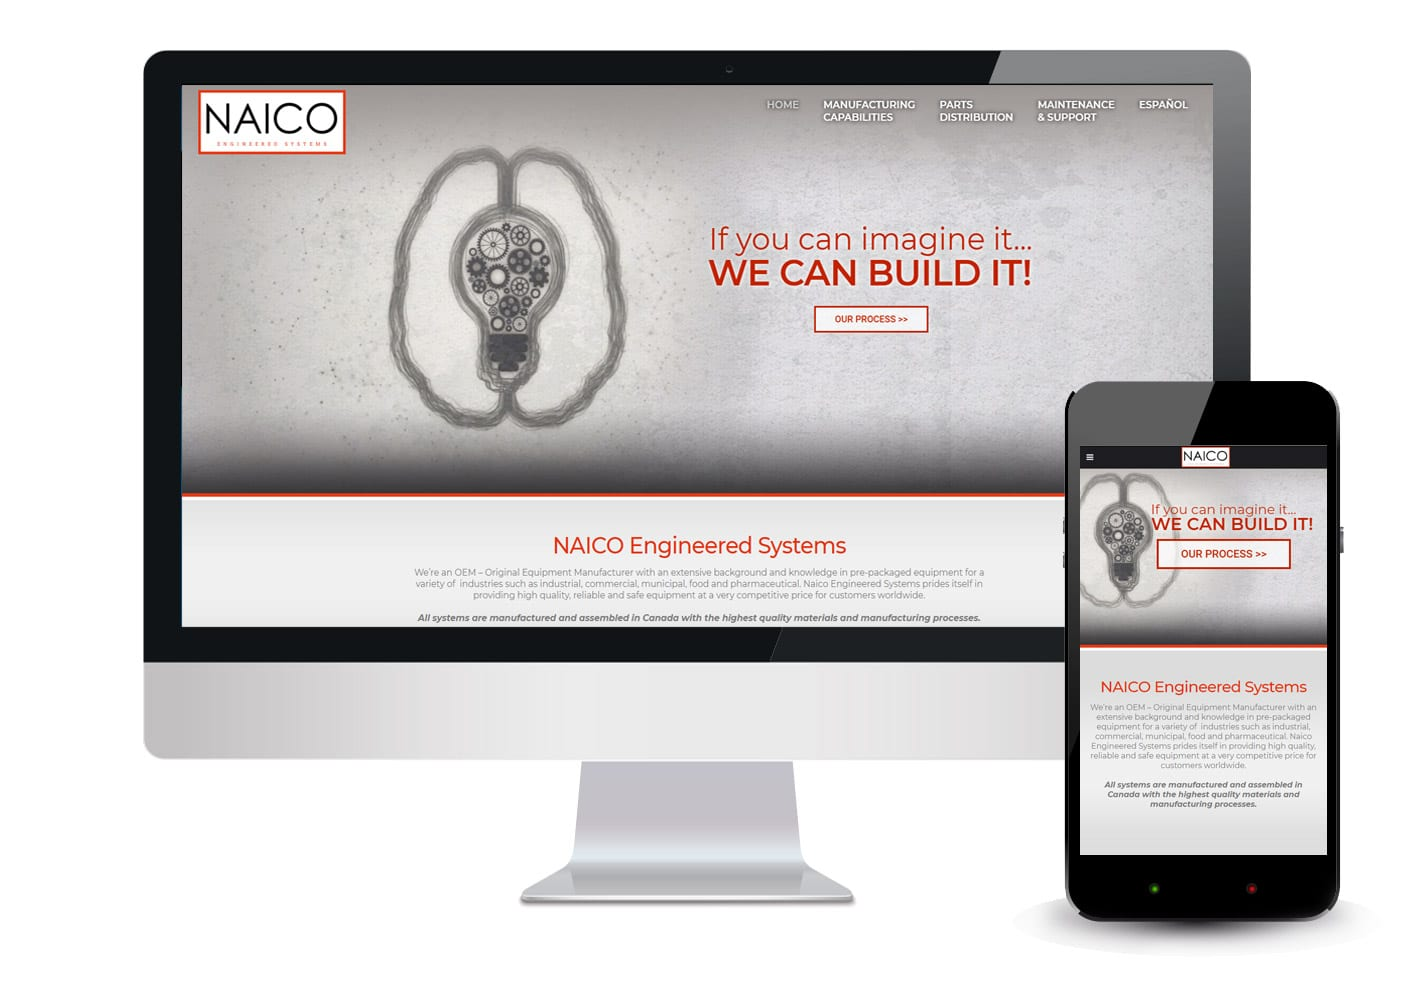 NAICO Engineered Systems